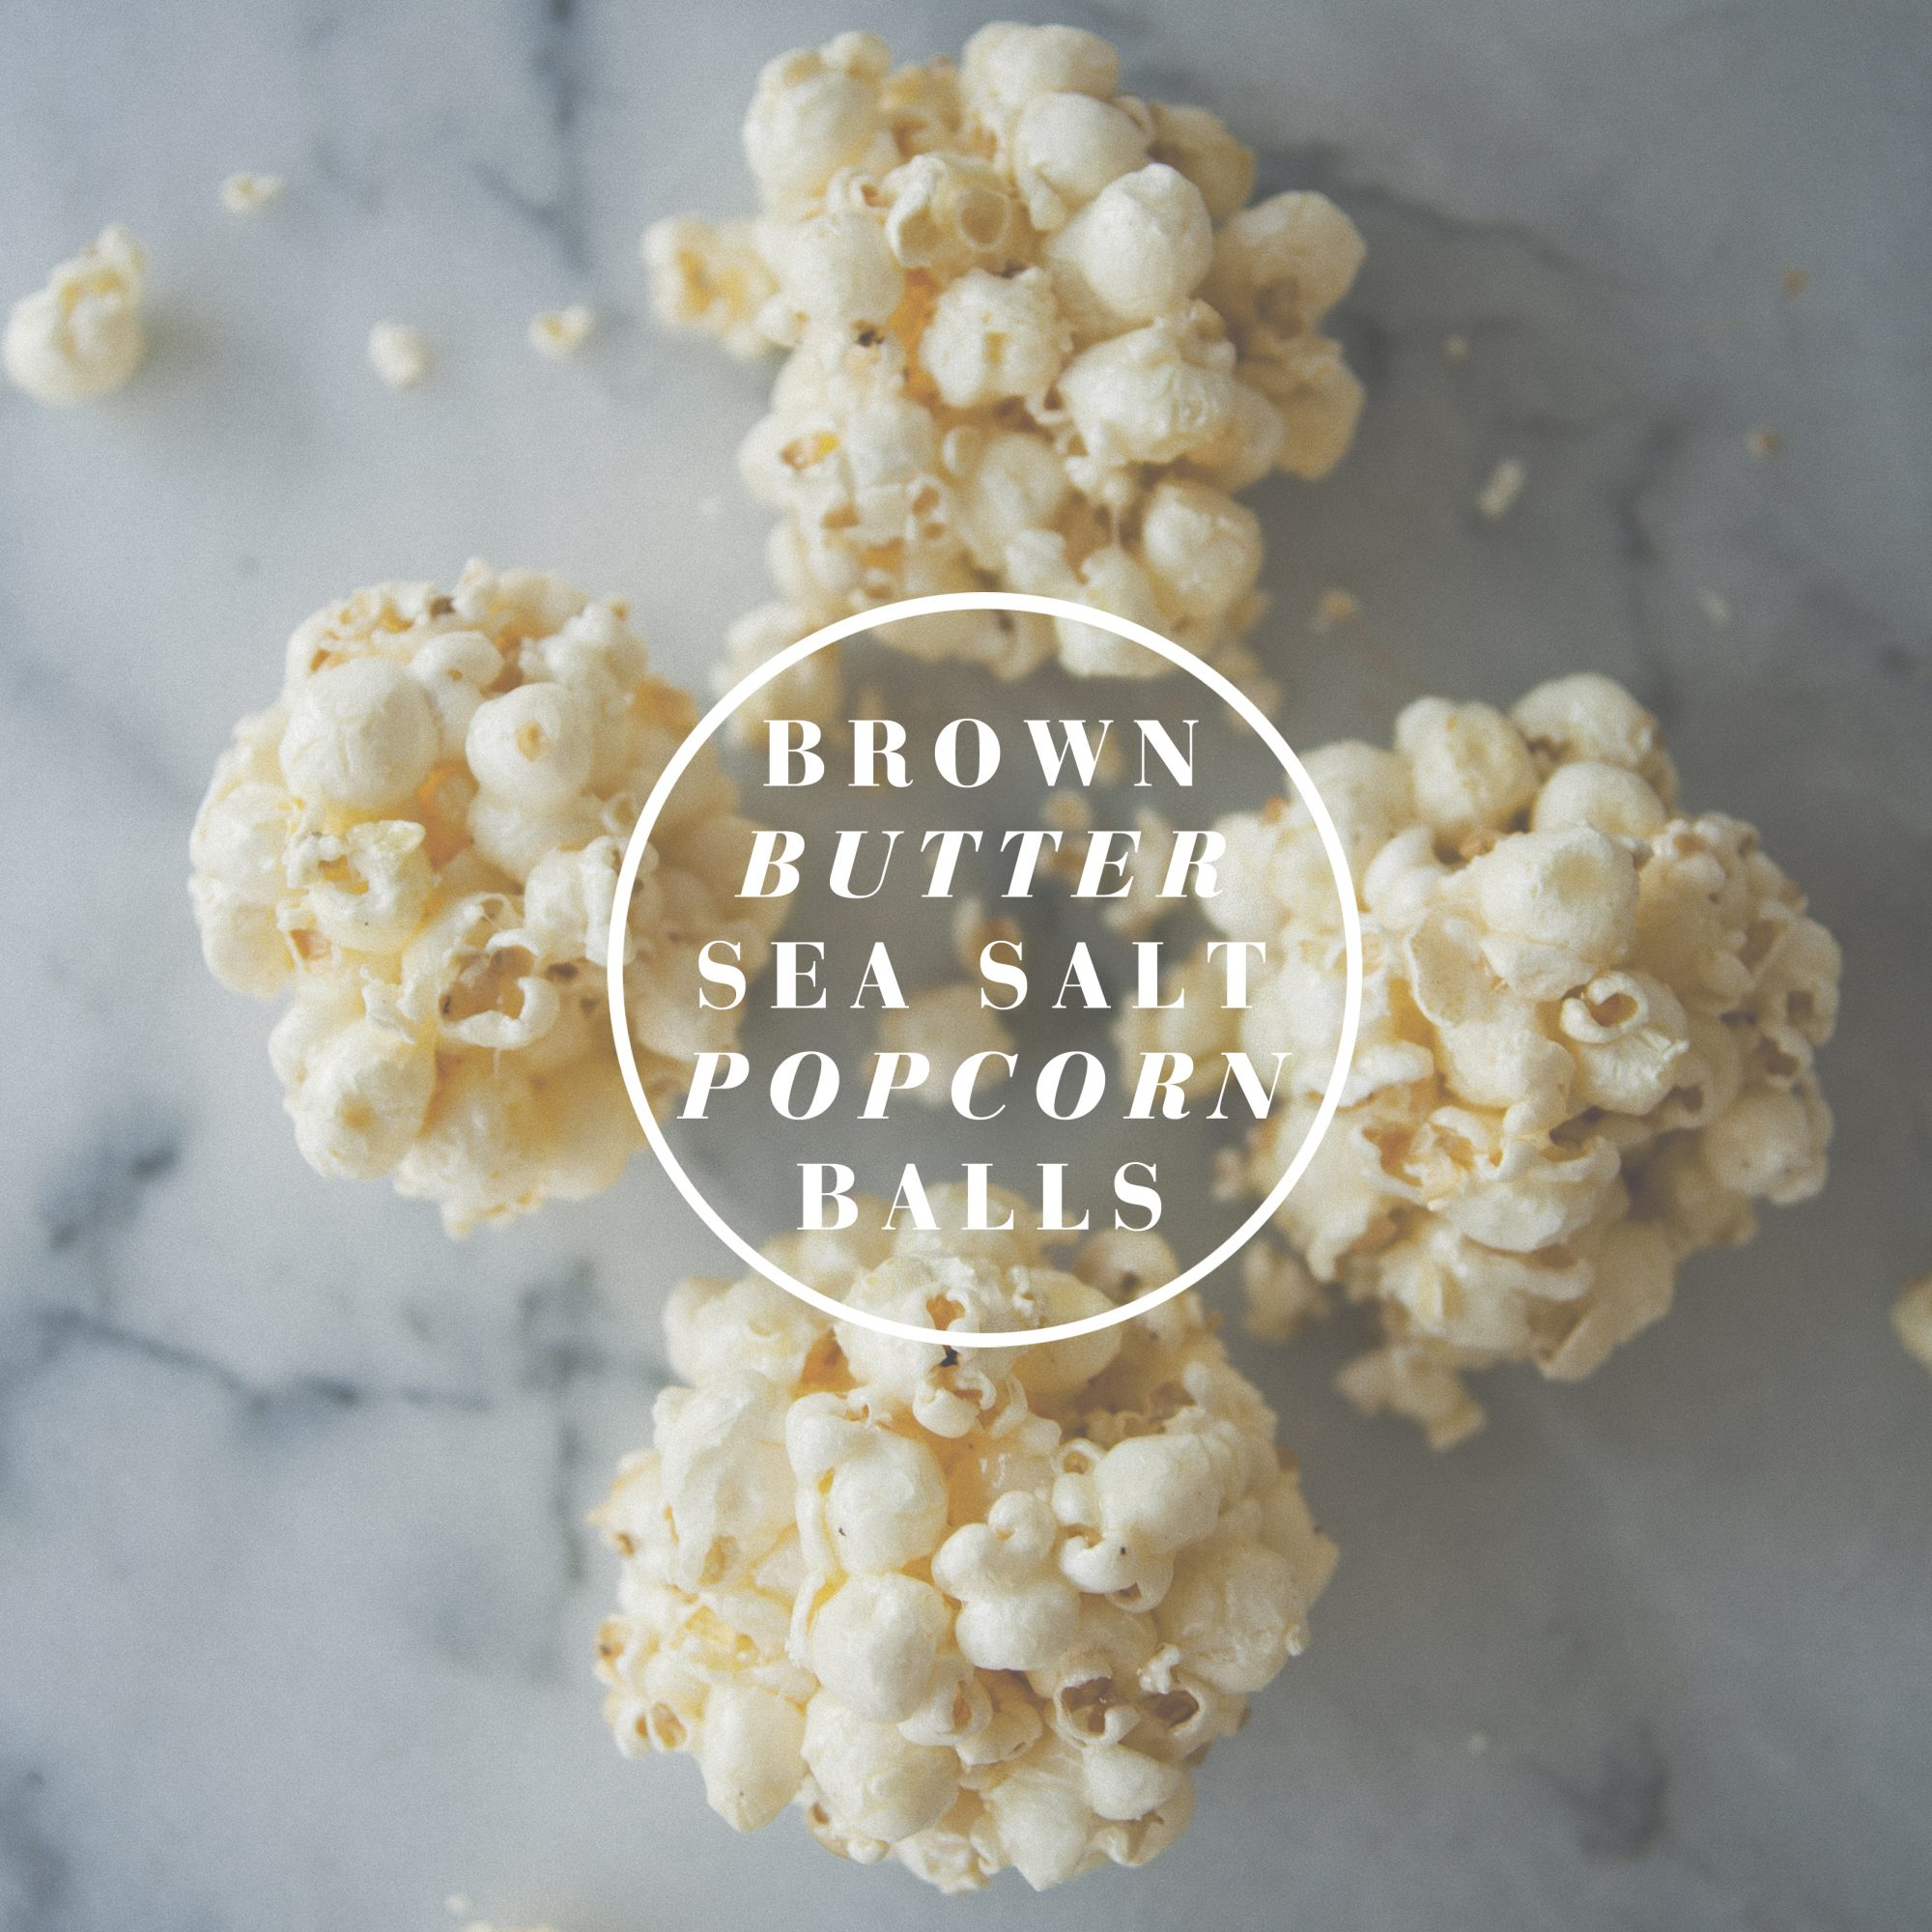 brown-butter-sea-salt-popcorn-balls-kitchy-header